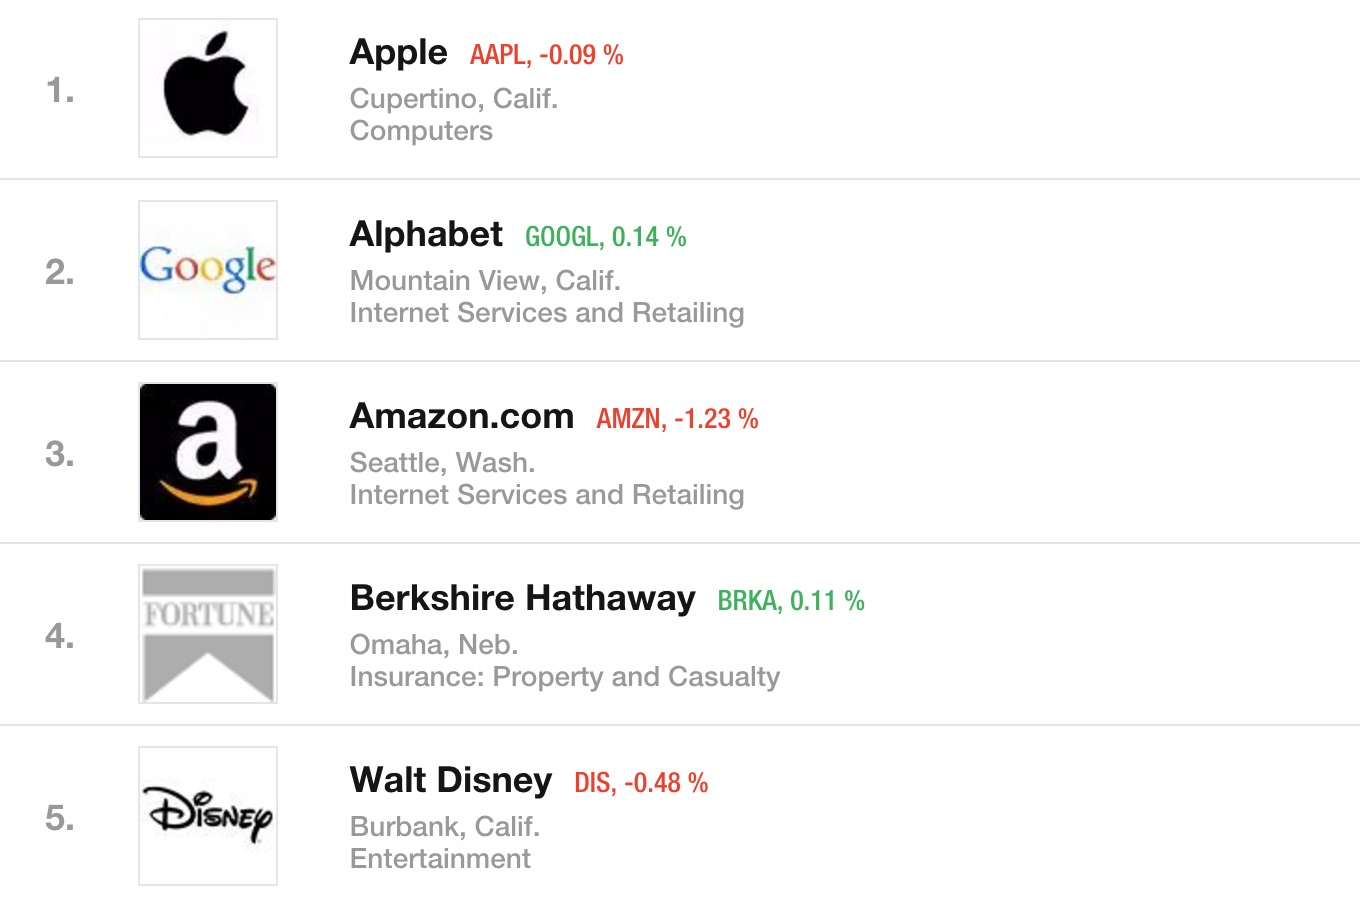 Fortune Admired Companies 2016